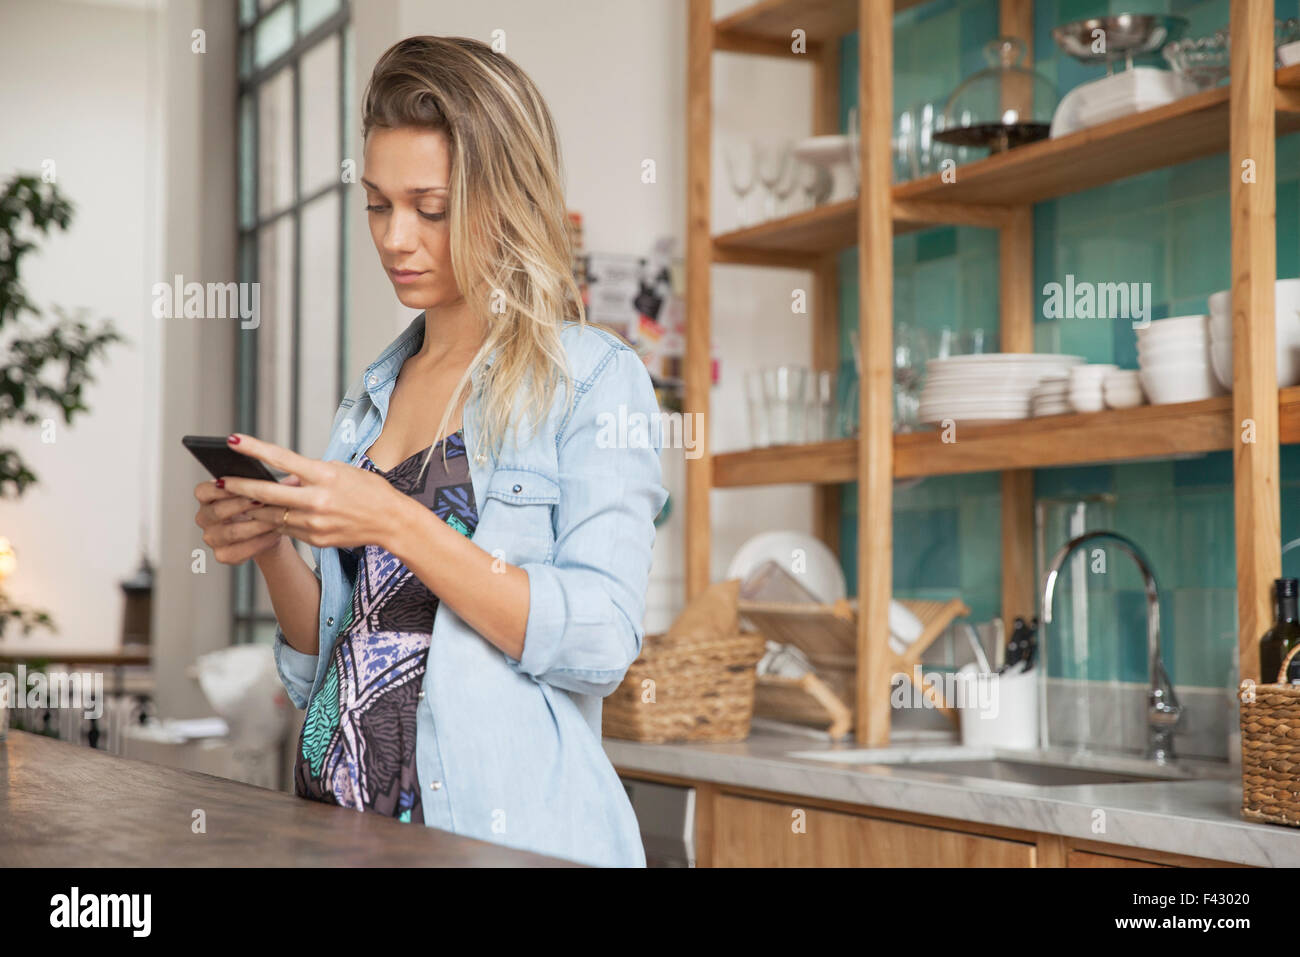 Young woman standing in kitchen with cell phone - Stock Image